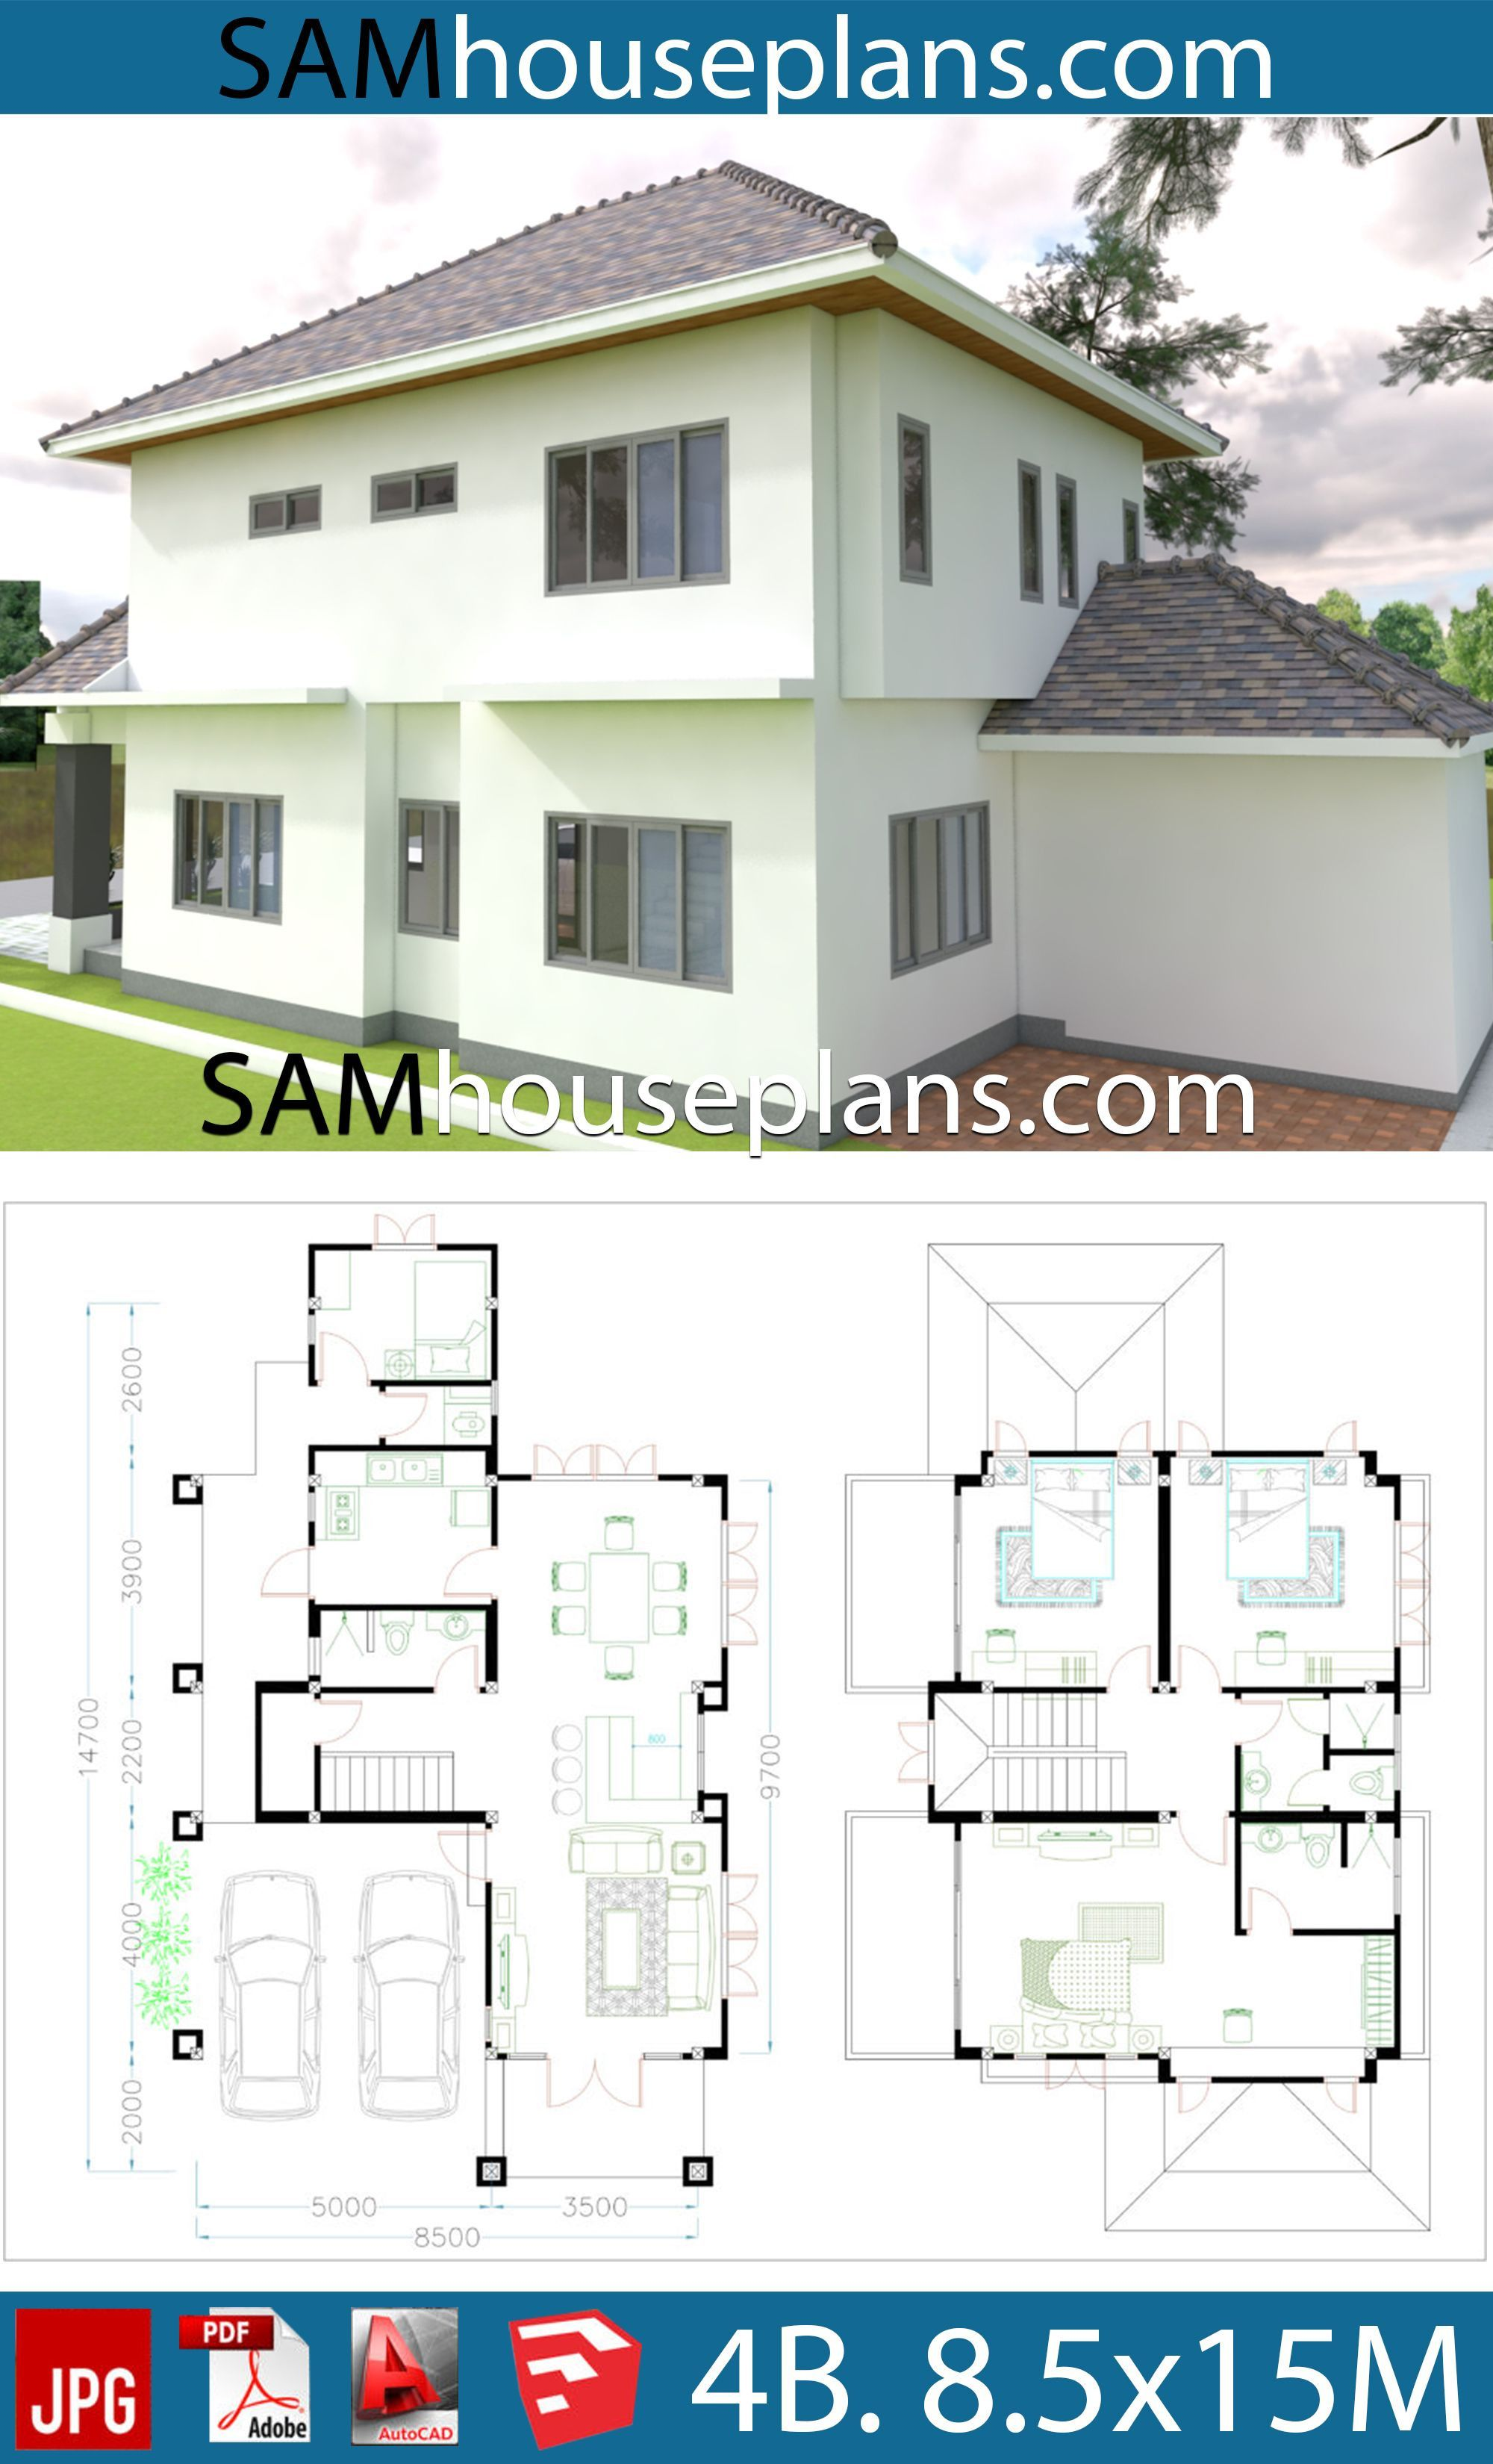 Autocad House Plans Free Download 2020 House Plans Bedroom House Plans 4 Bedroom House Plans